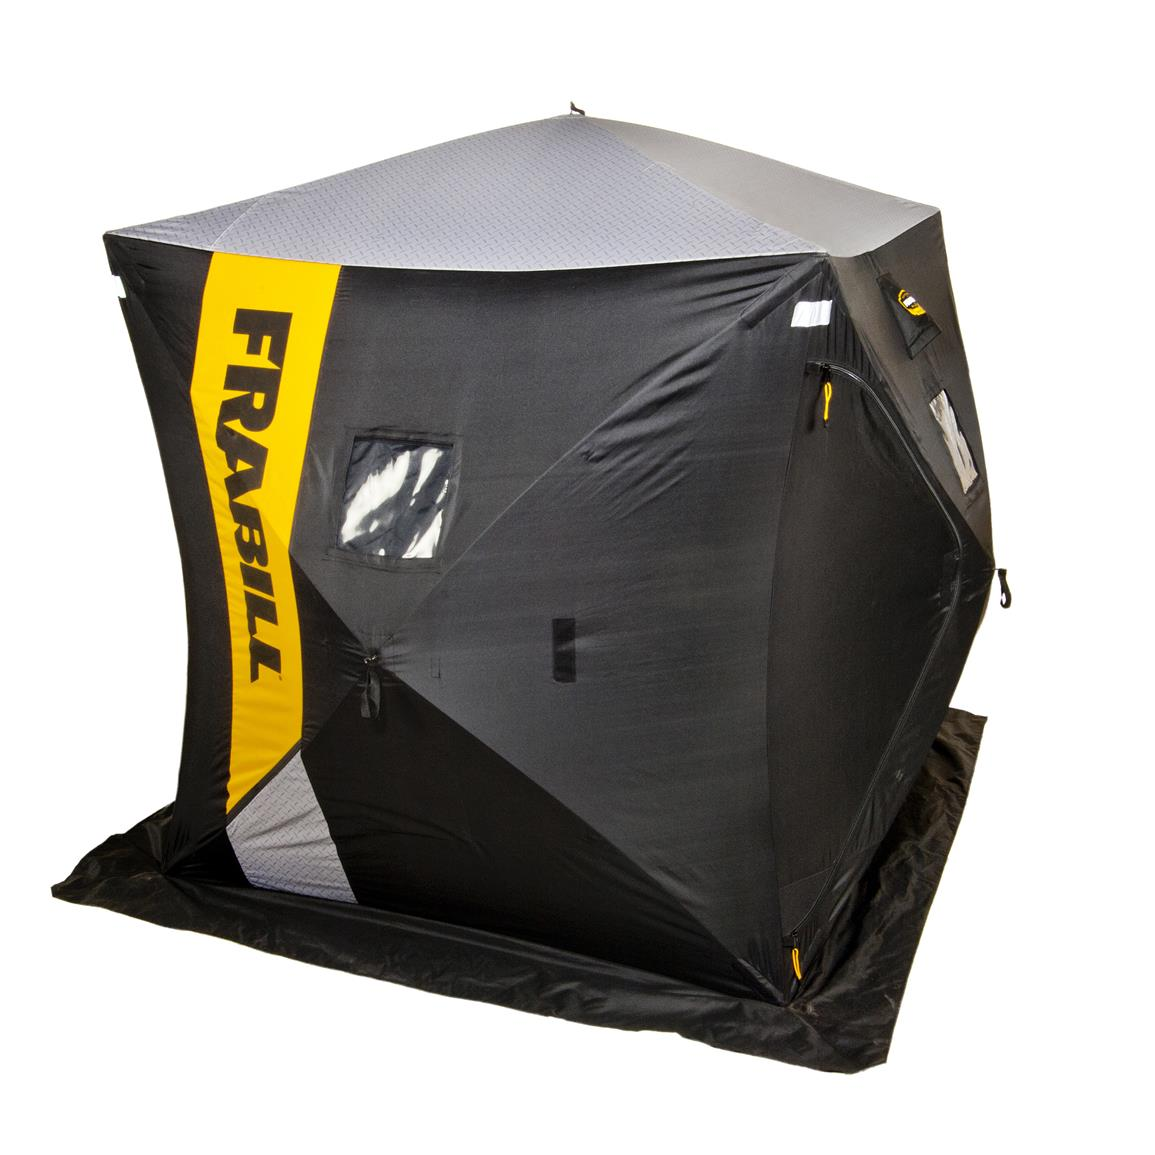 Frabill HQ200 Ice Shelter, Hub Style, 2-3 Person